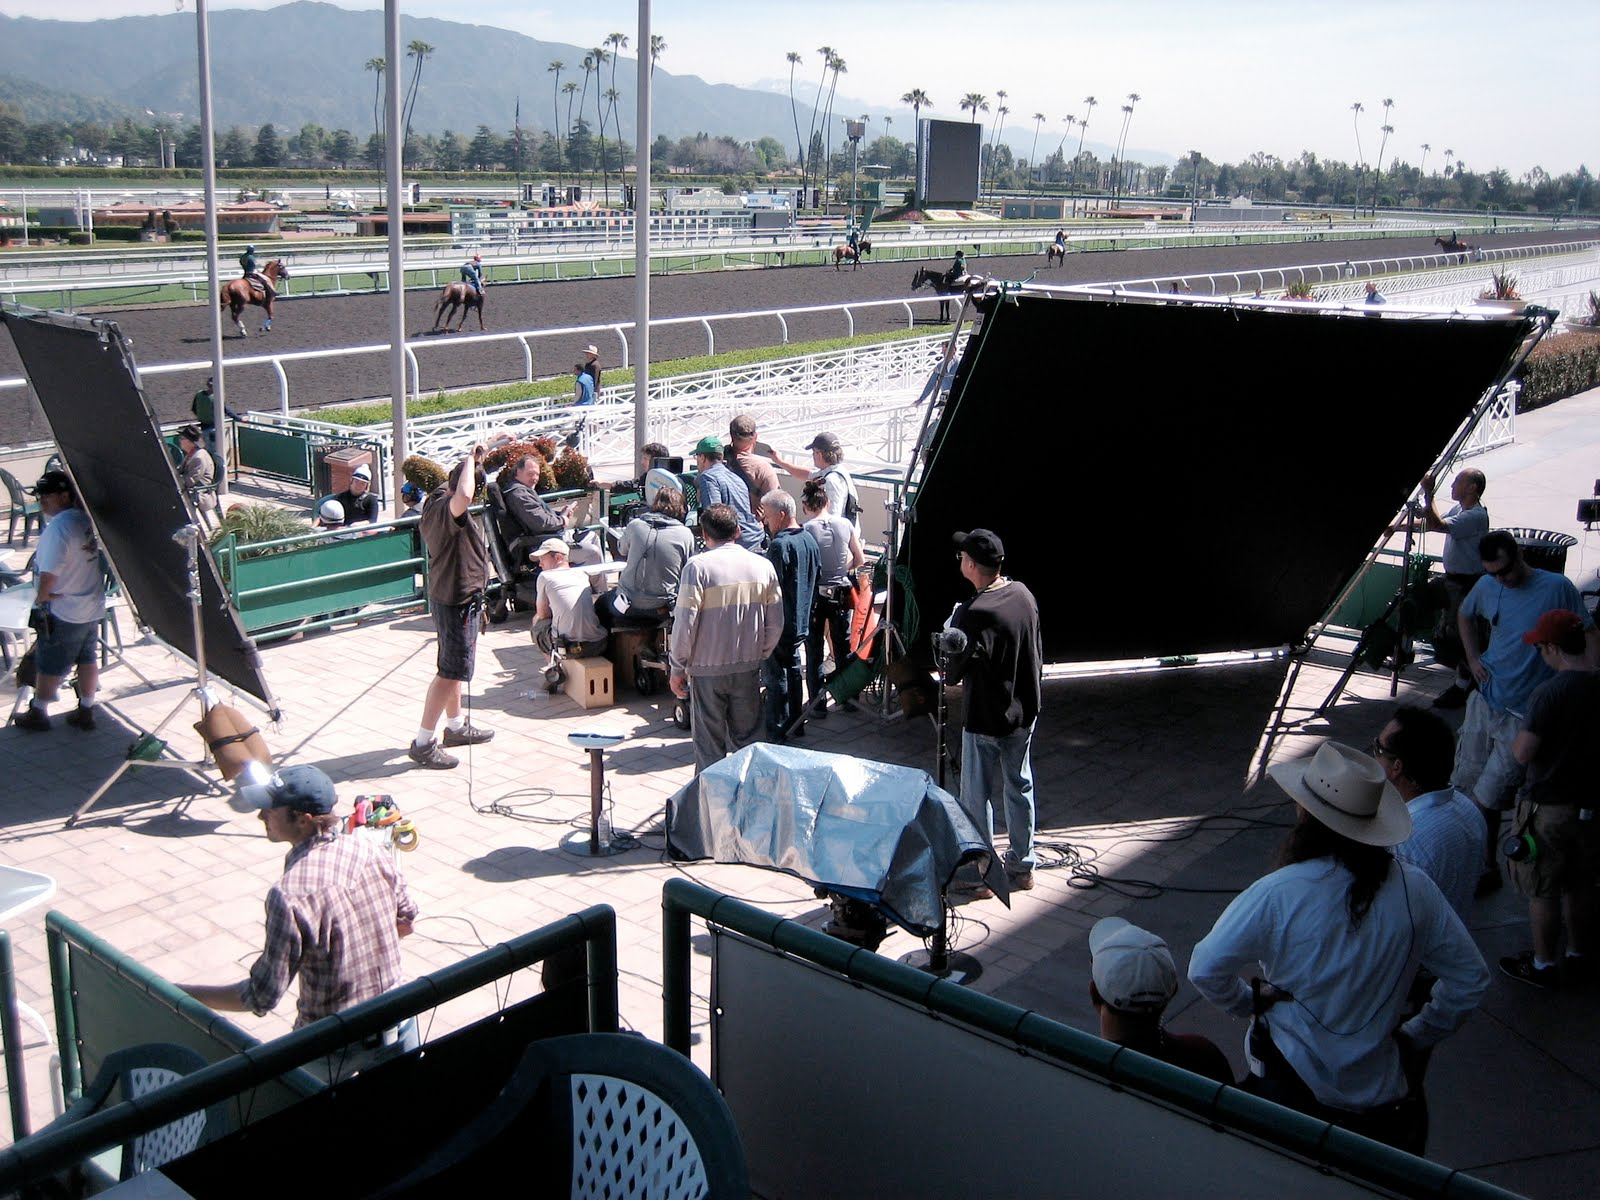 Mary Forney S Blog On The Set Of Quot Luck Quot At Santa Anita